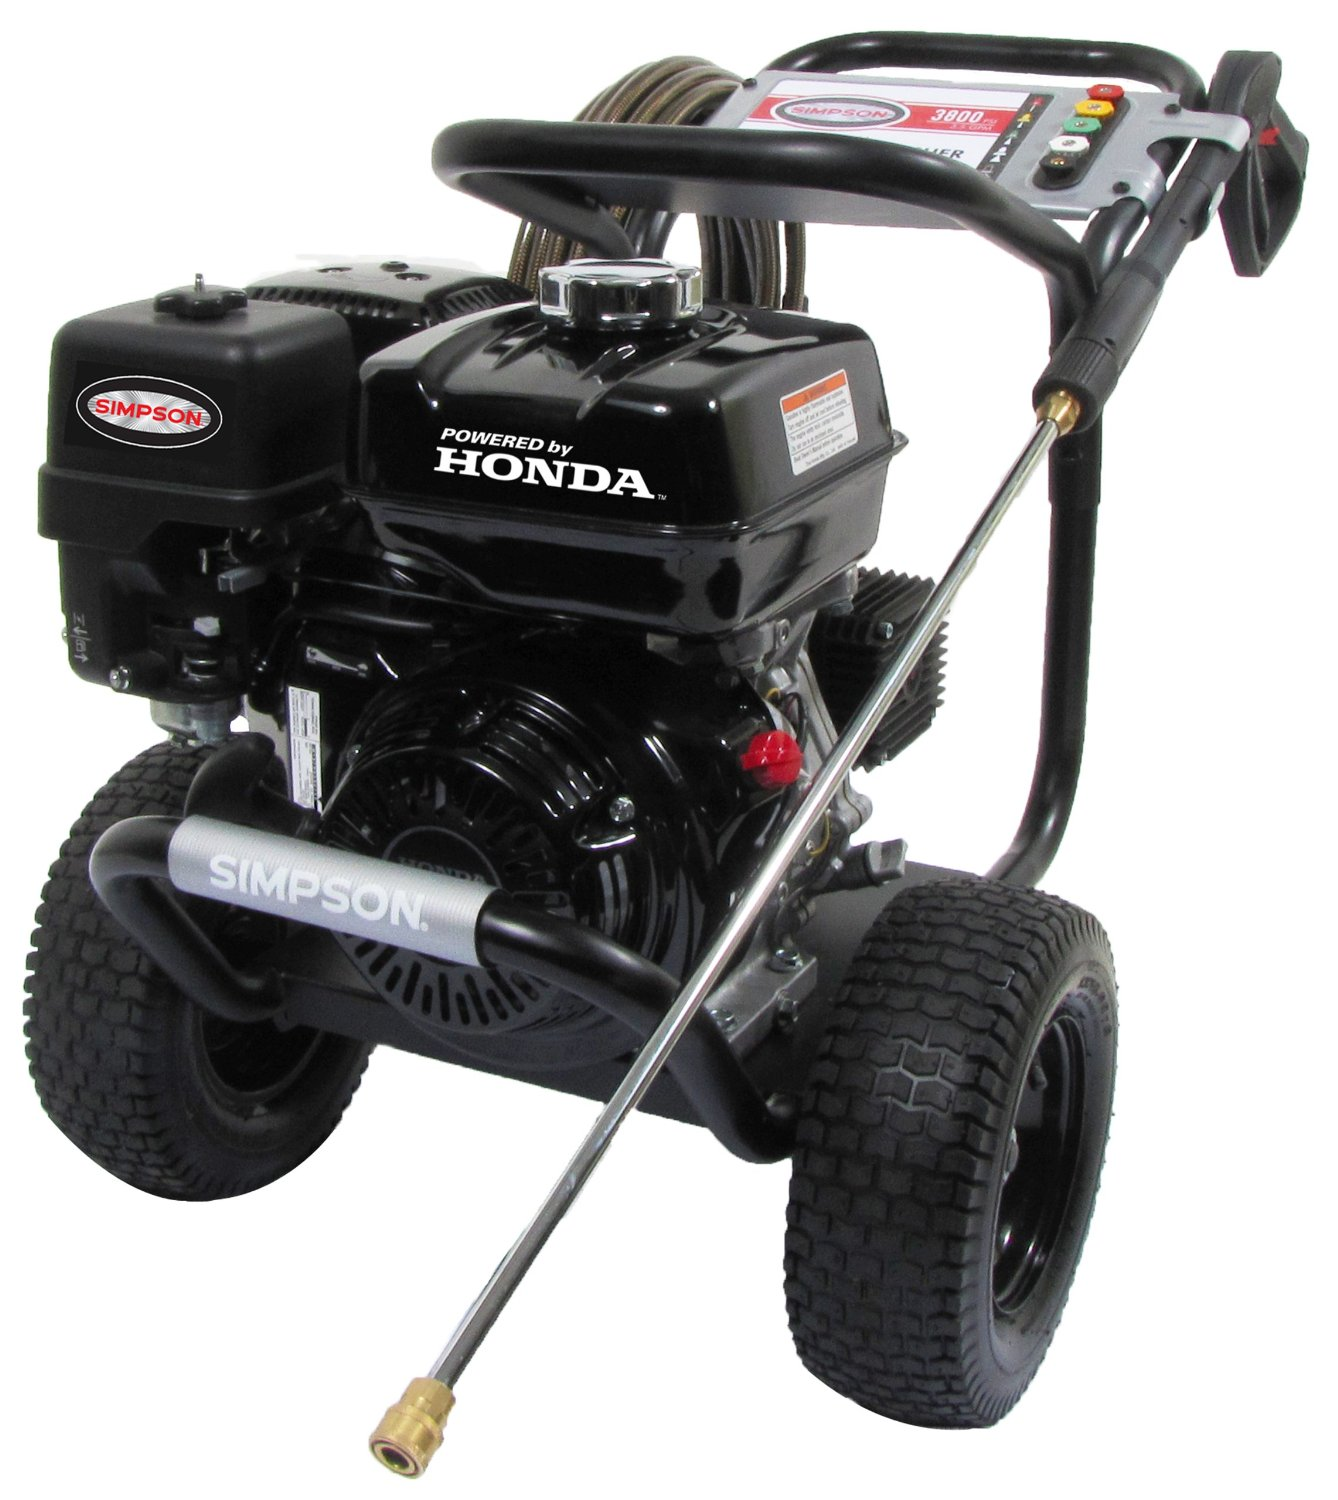 Amazon.com : Simpson PS3835 3800 PSI 3.5 GPM Honda GX270 Engine Gas Pressure Washer